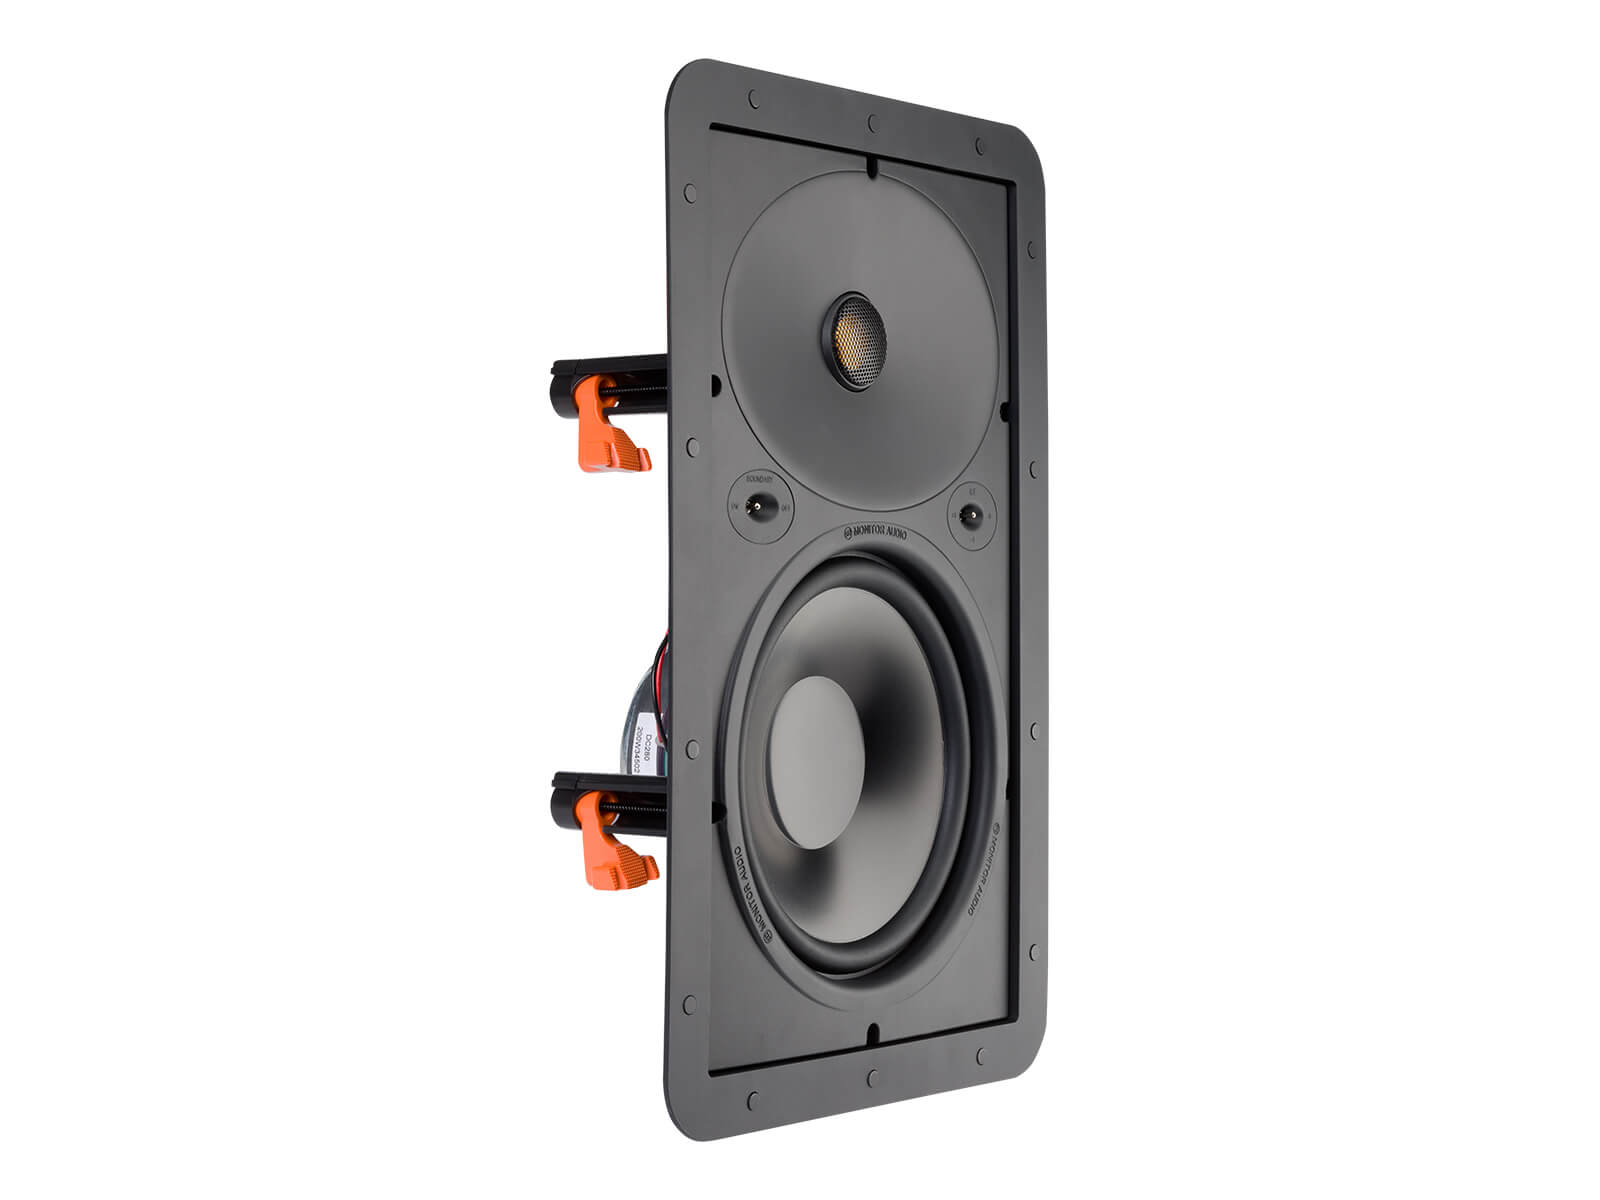 Core W280, front ISO, grille-less in-wall speakers.